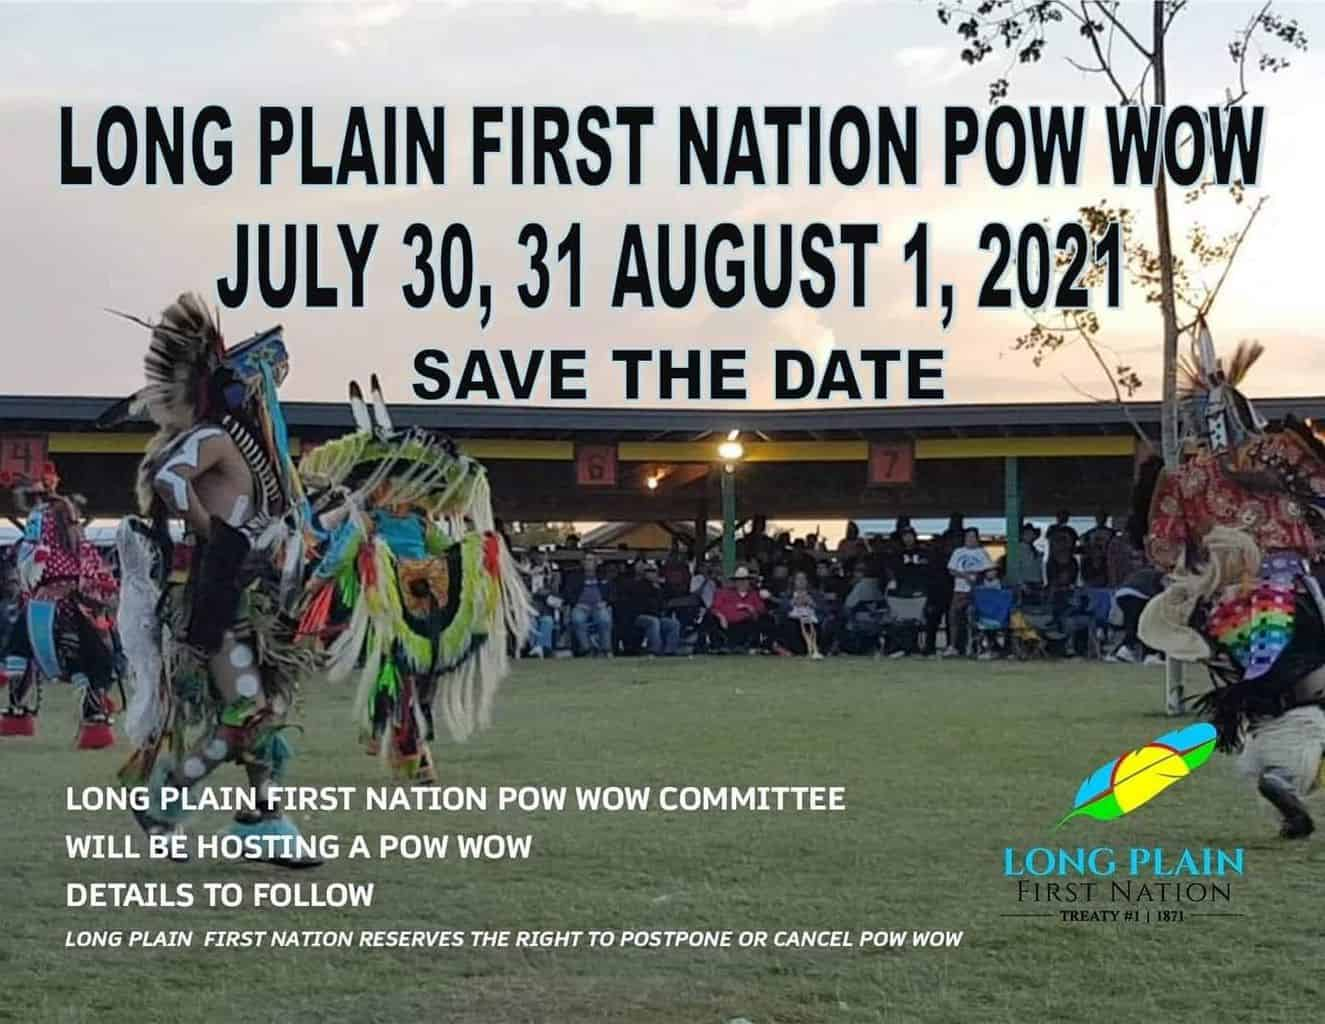 Long Plain First Nation Pow Wow